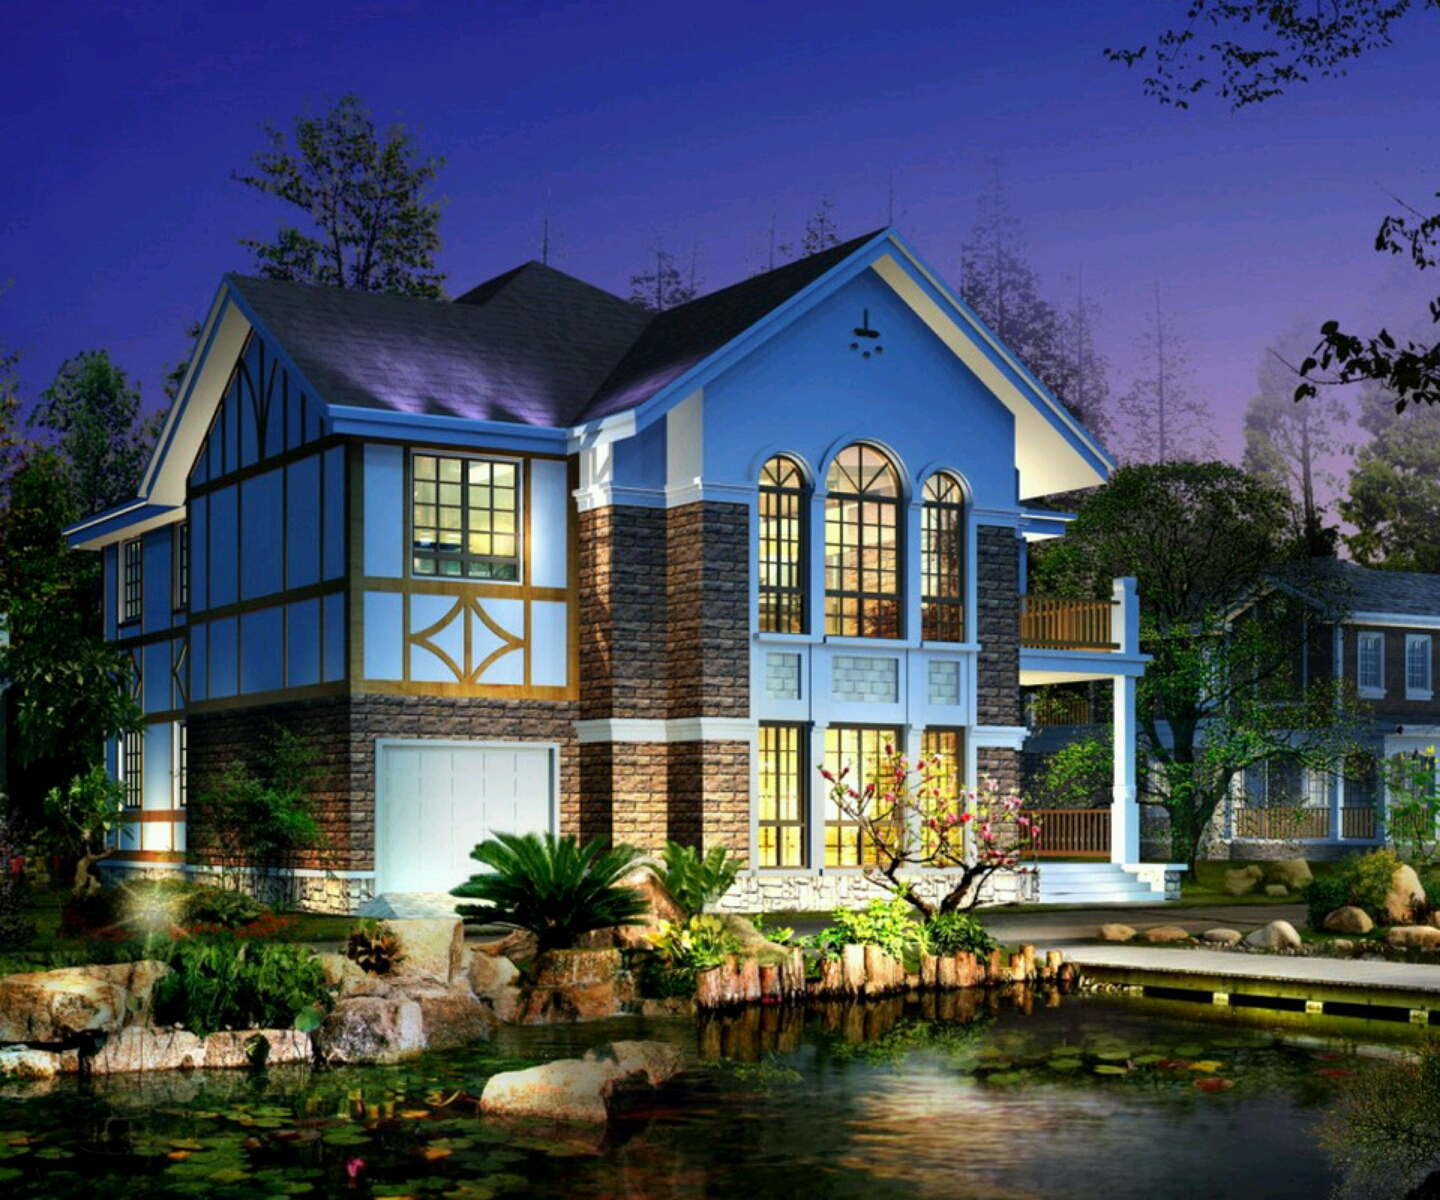 New home designs latest modern big homes exterior for Huge pretty houses